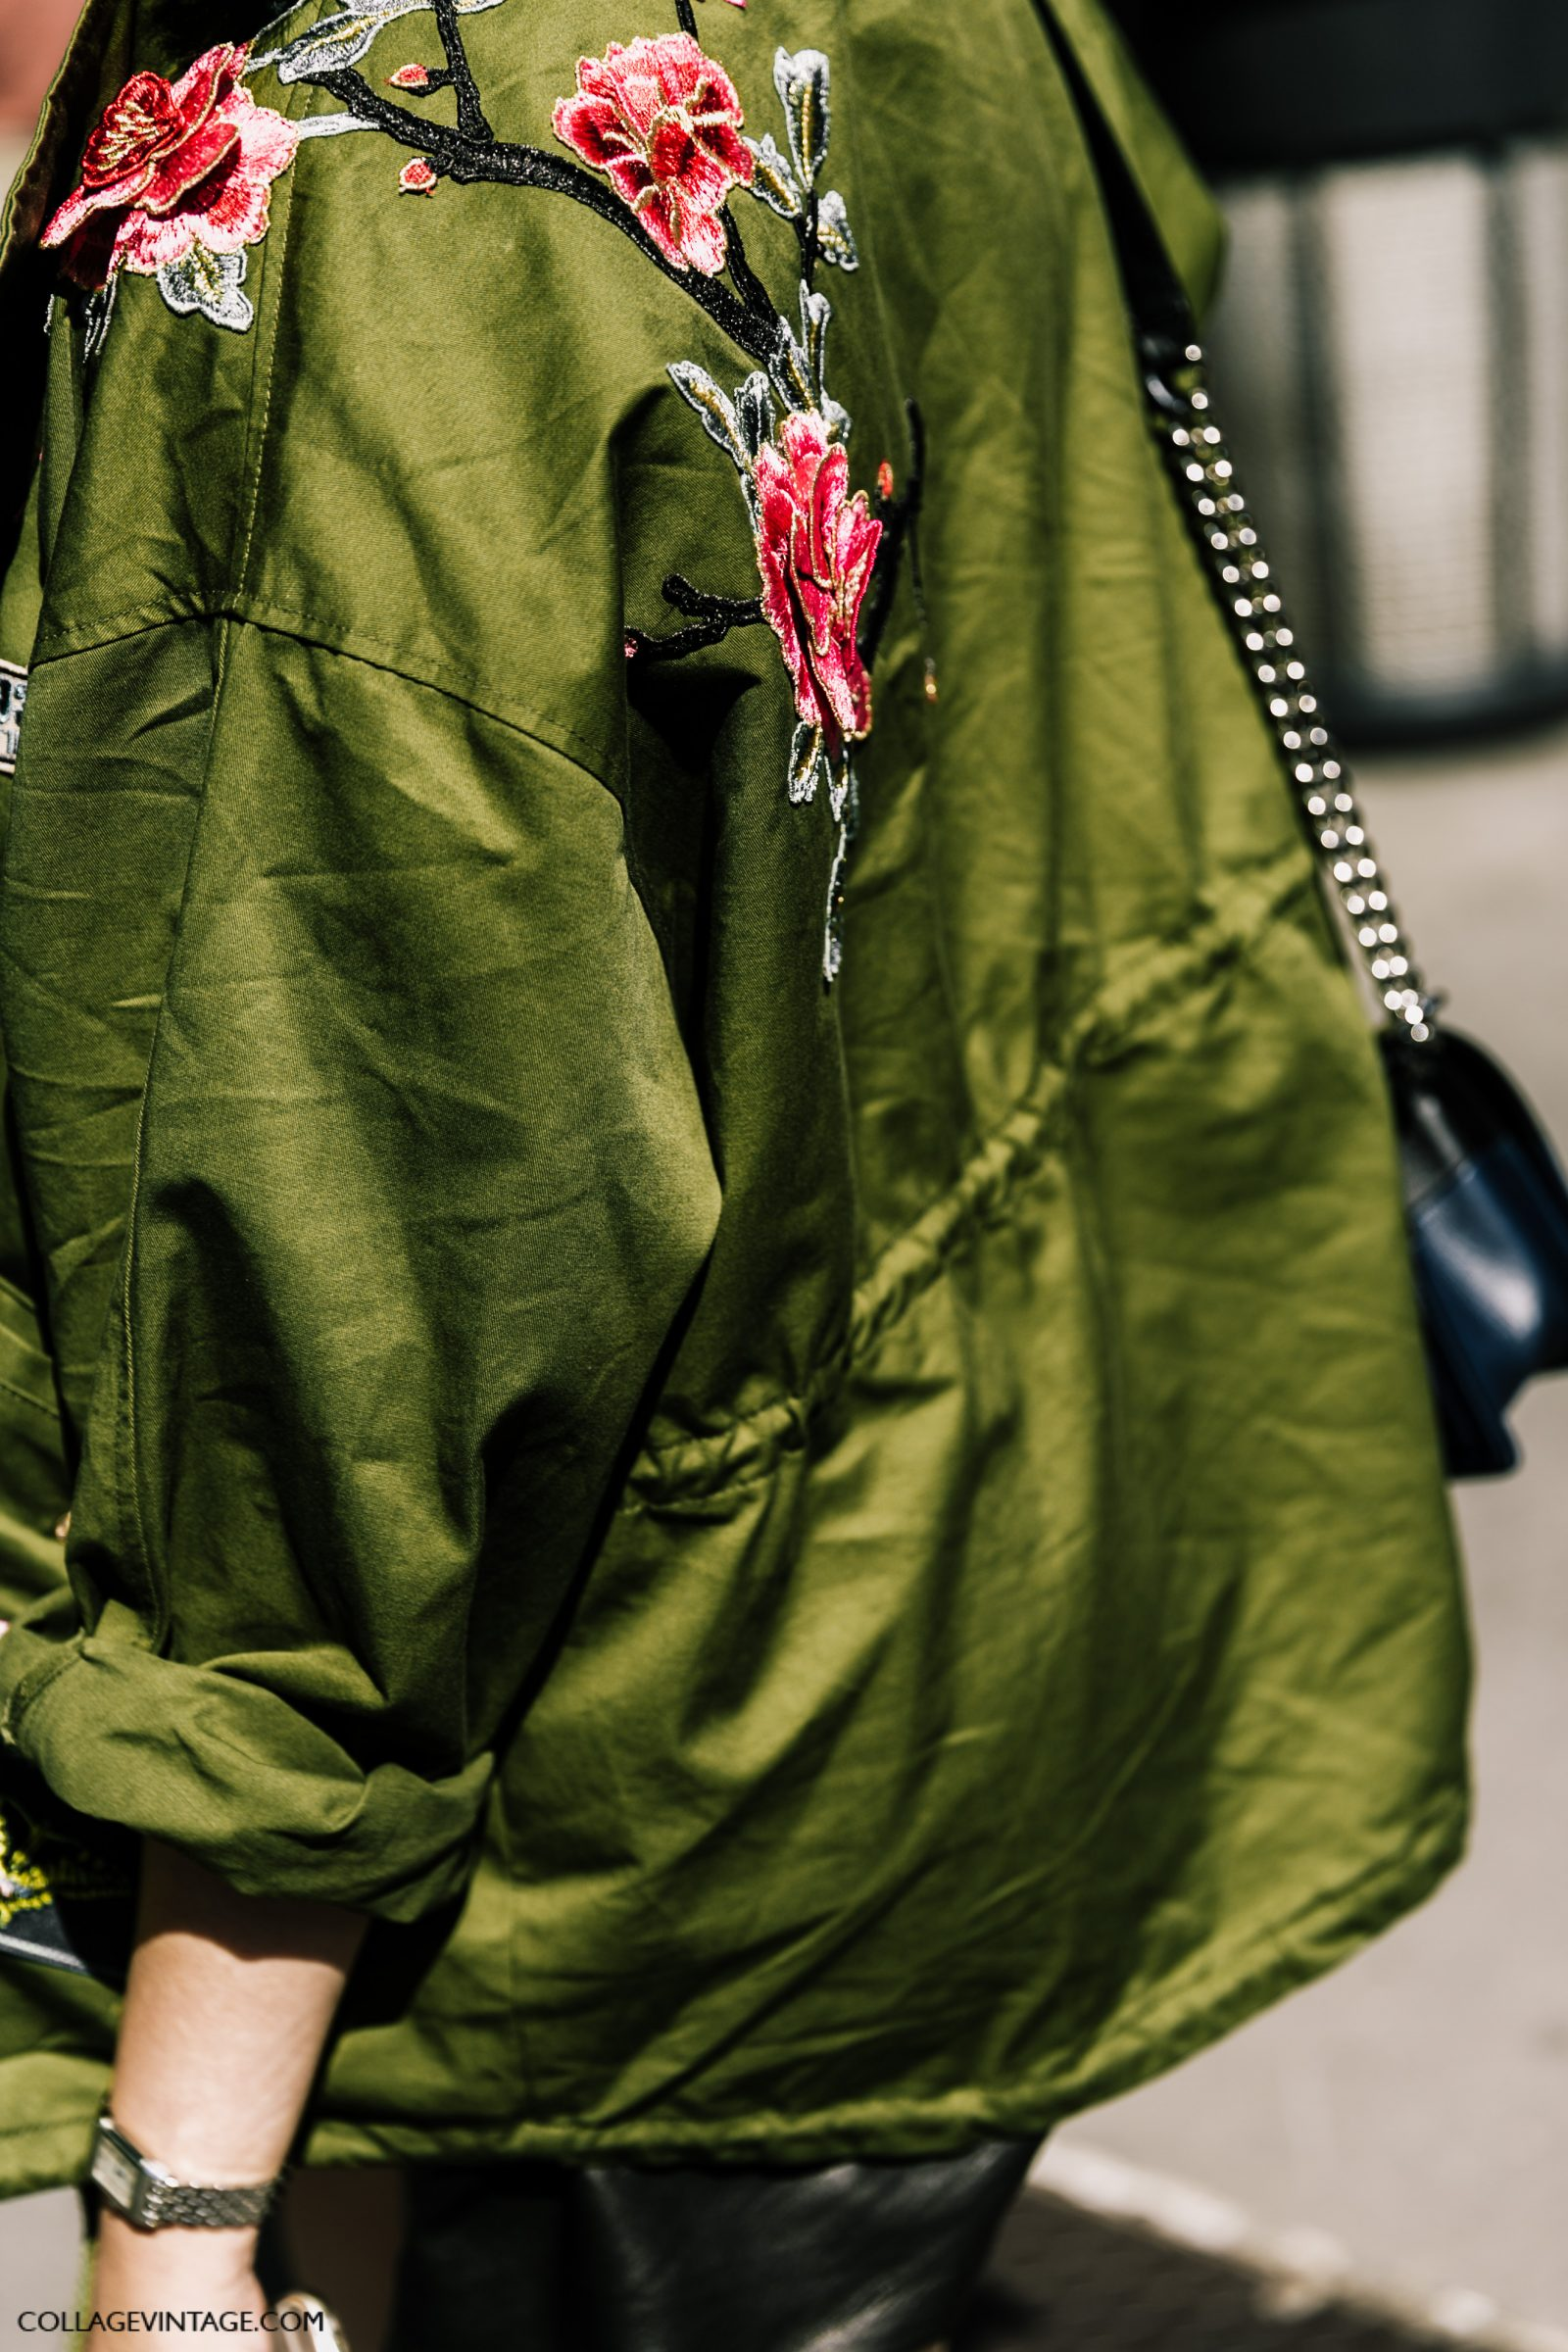 nyfw-new_york_fashion_week_ss17-street_style-outfits-collage_vintage-vintage-phillip_lim-the-row-proenza_schouler-rossie_aussolin-101